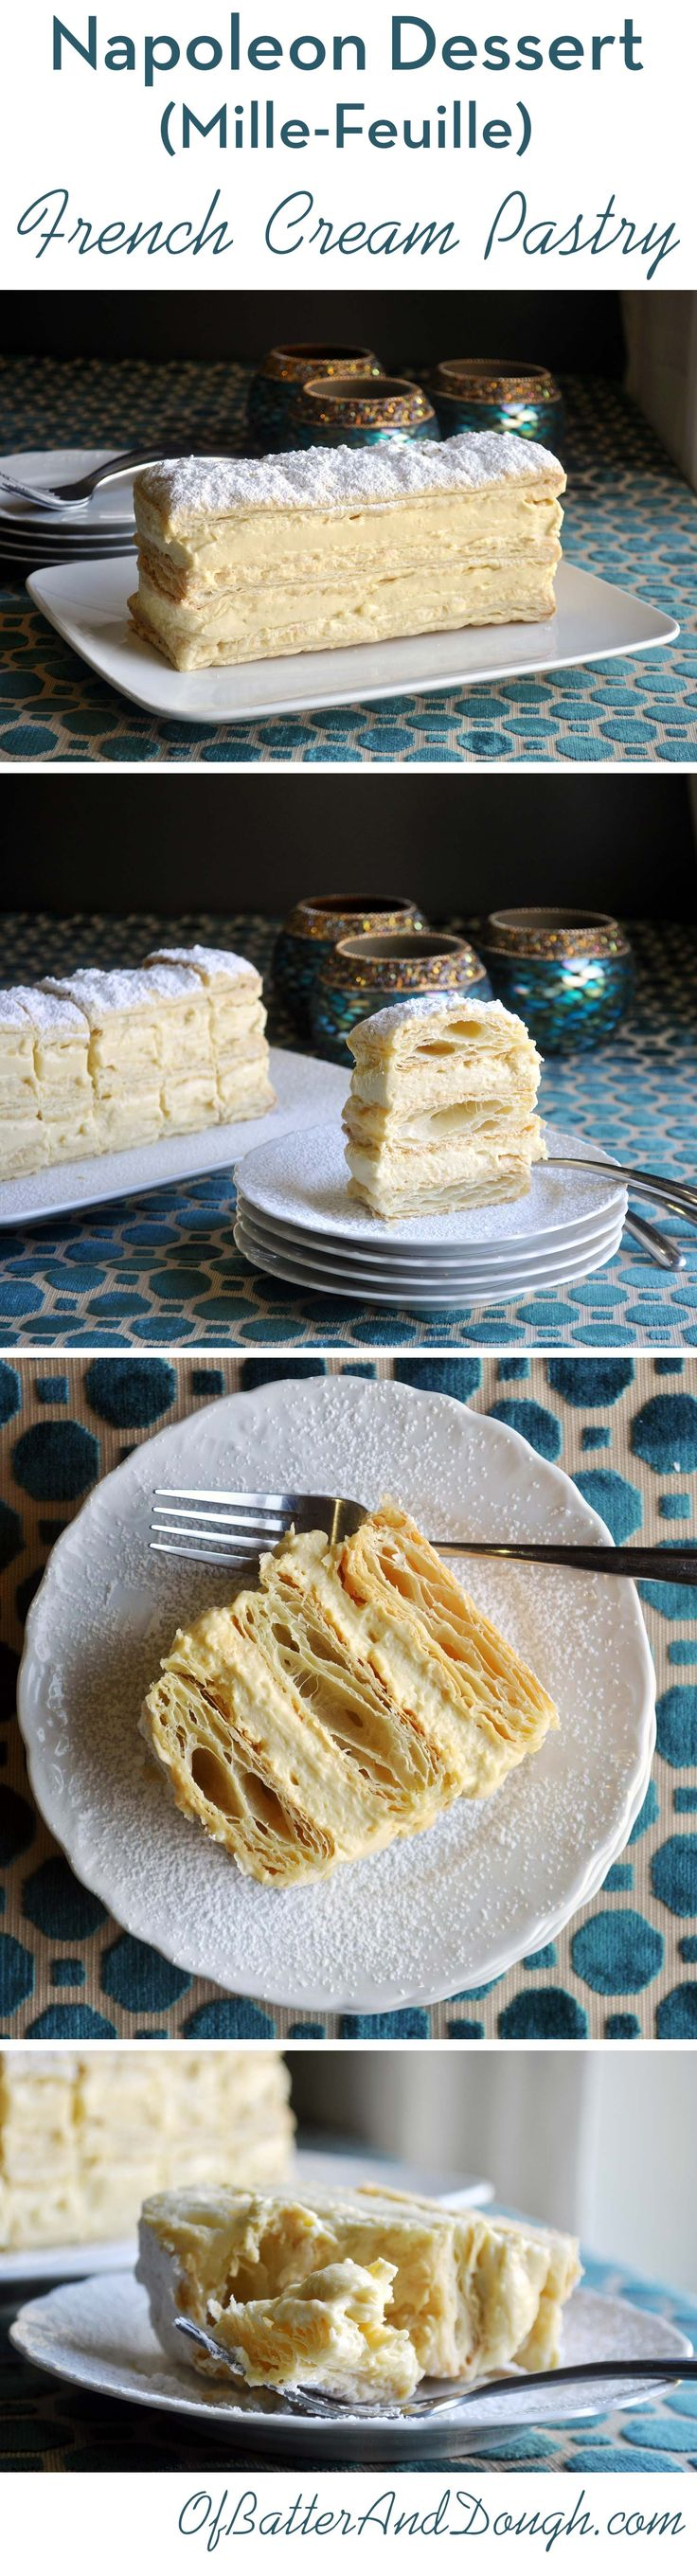 Napoleon Dessert Recipe French Pastry Mille Feuille Cream Pastry                                                                                                                                                                                 More